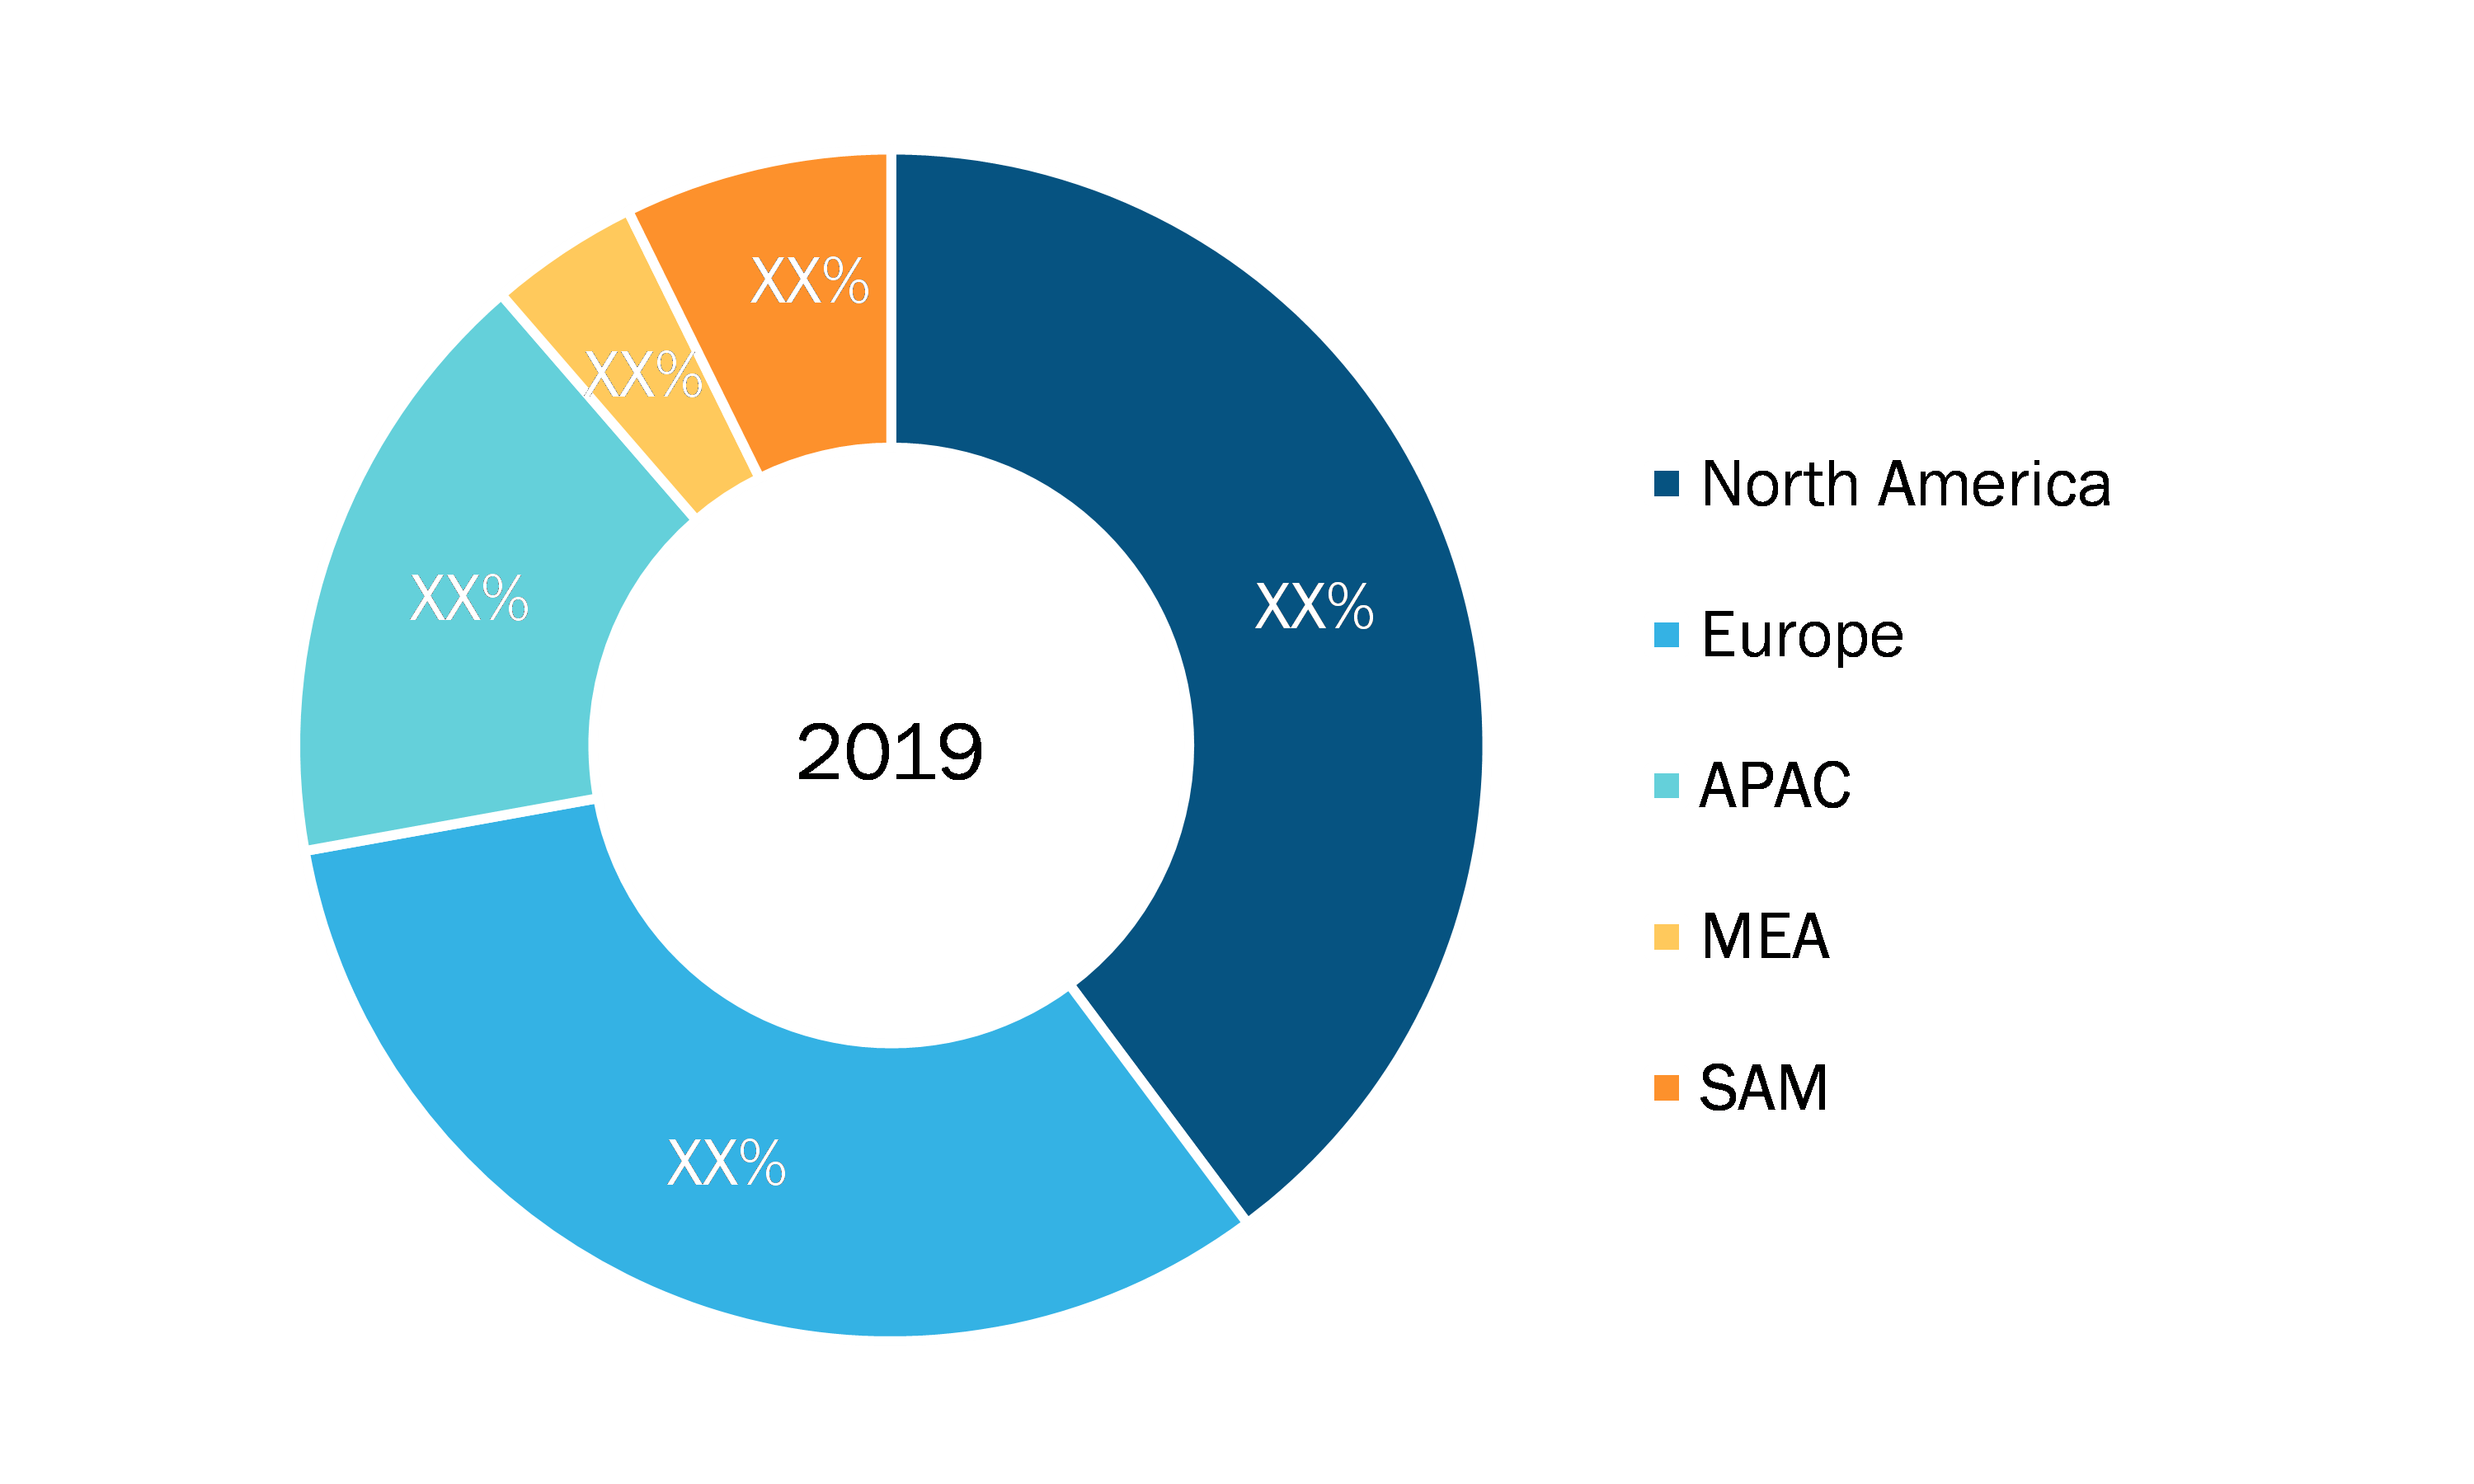 Active Noise and Vibration Control System Market - Geographic Breakdown, 2019